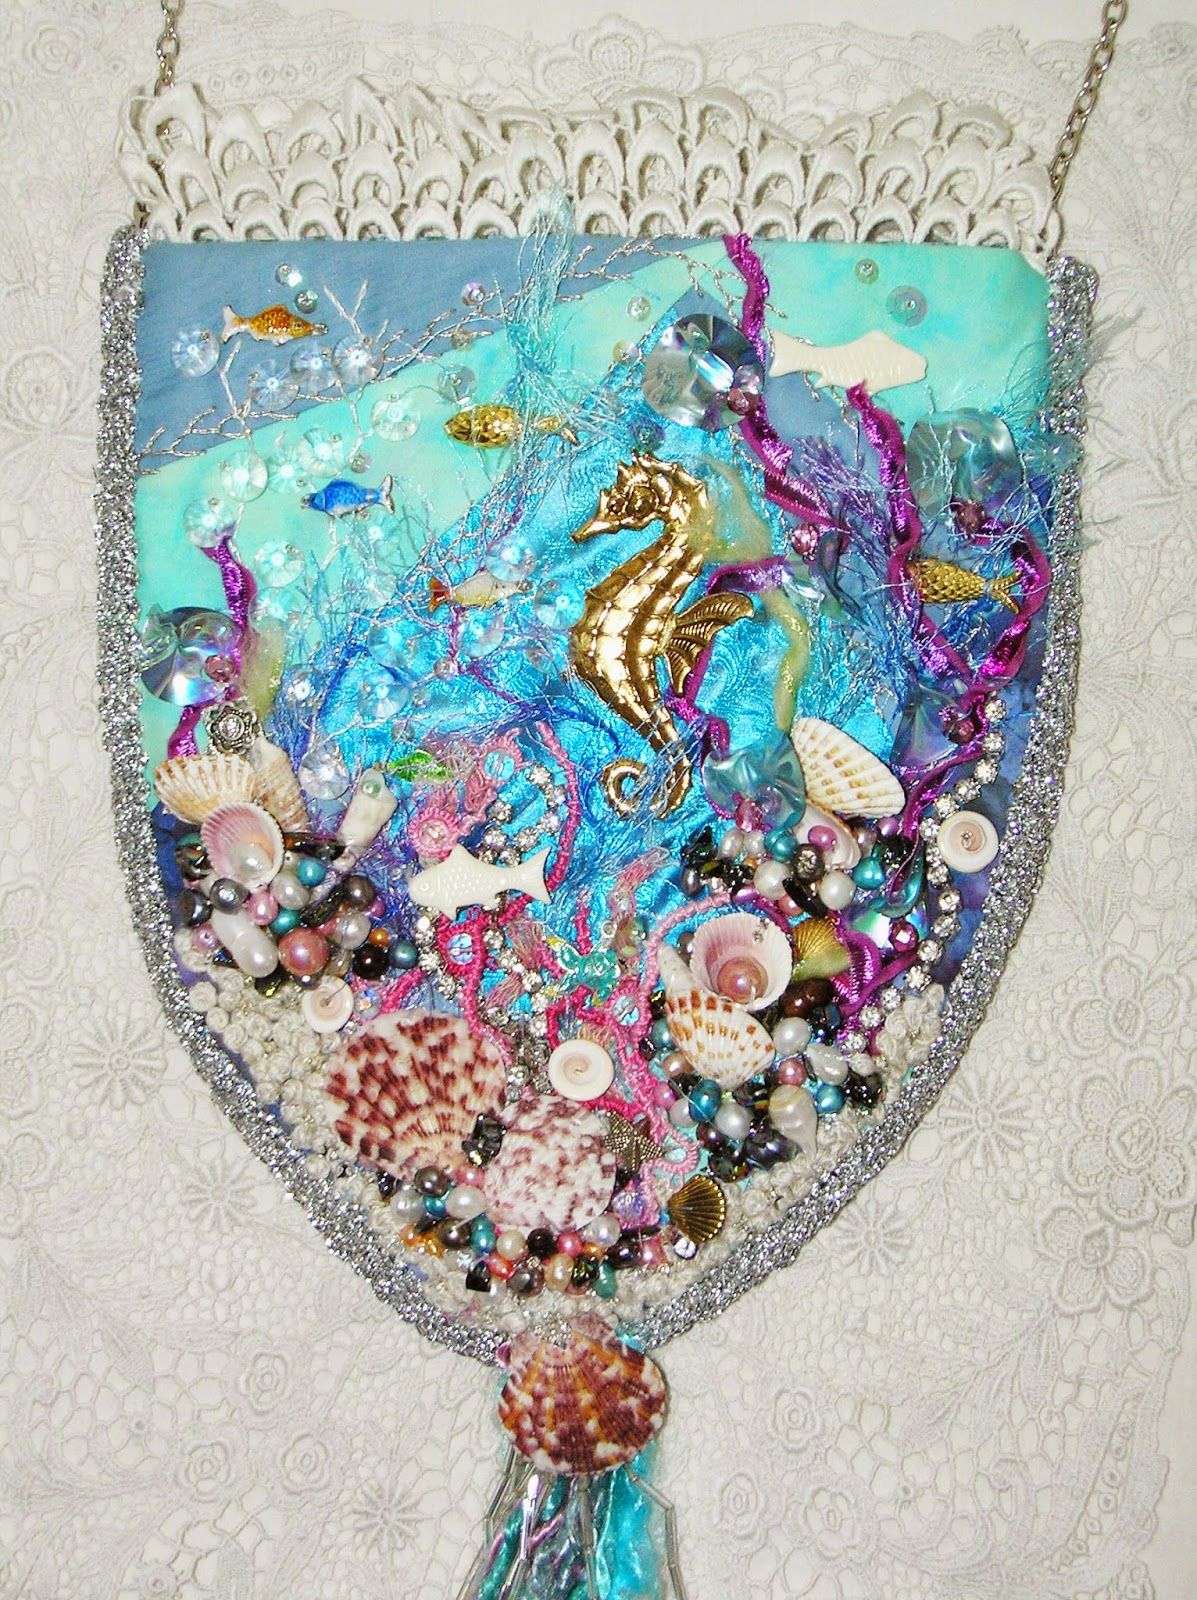 Crazy Quilting and Embroidery Blog by Pamela Kellogg of Kitty and Me Designs: Crazy Quilt Quarterly Magazine